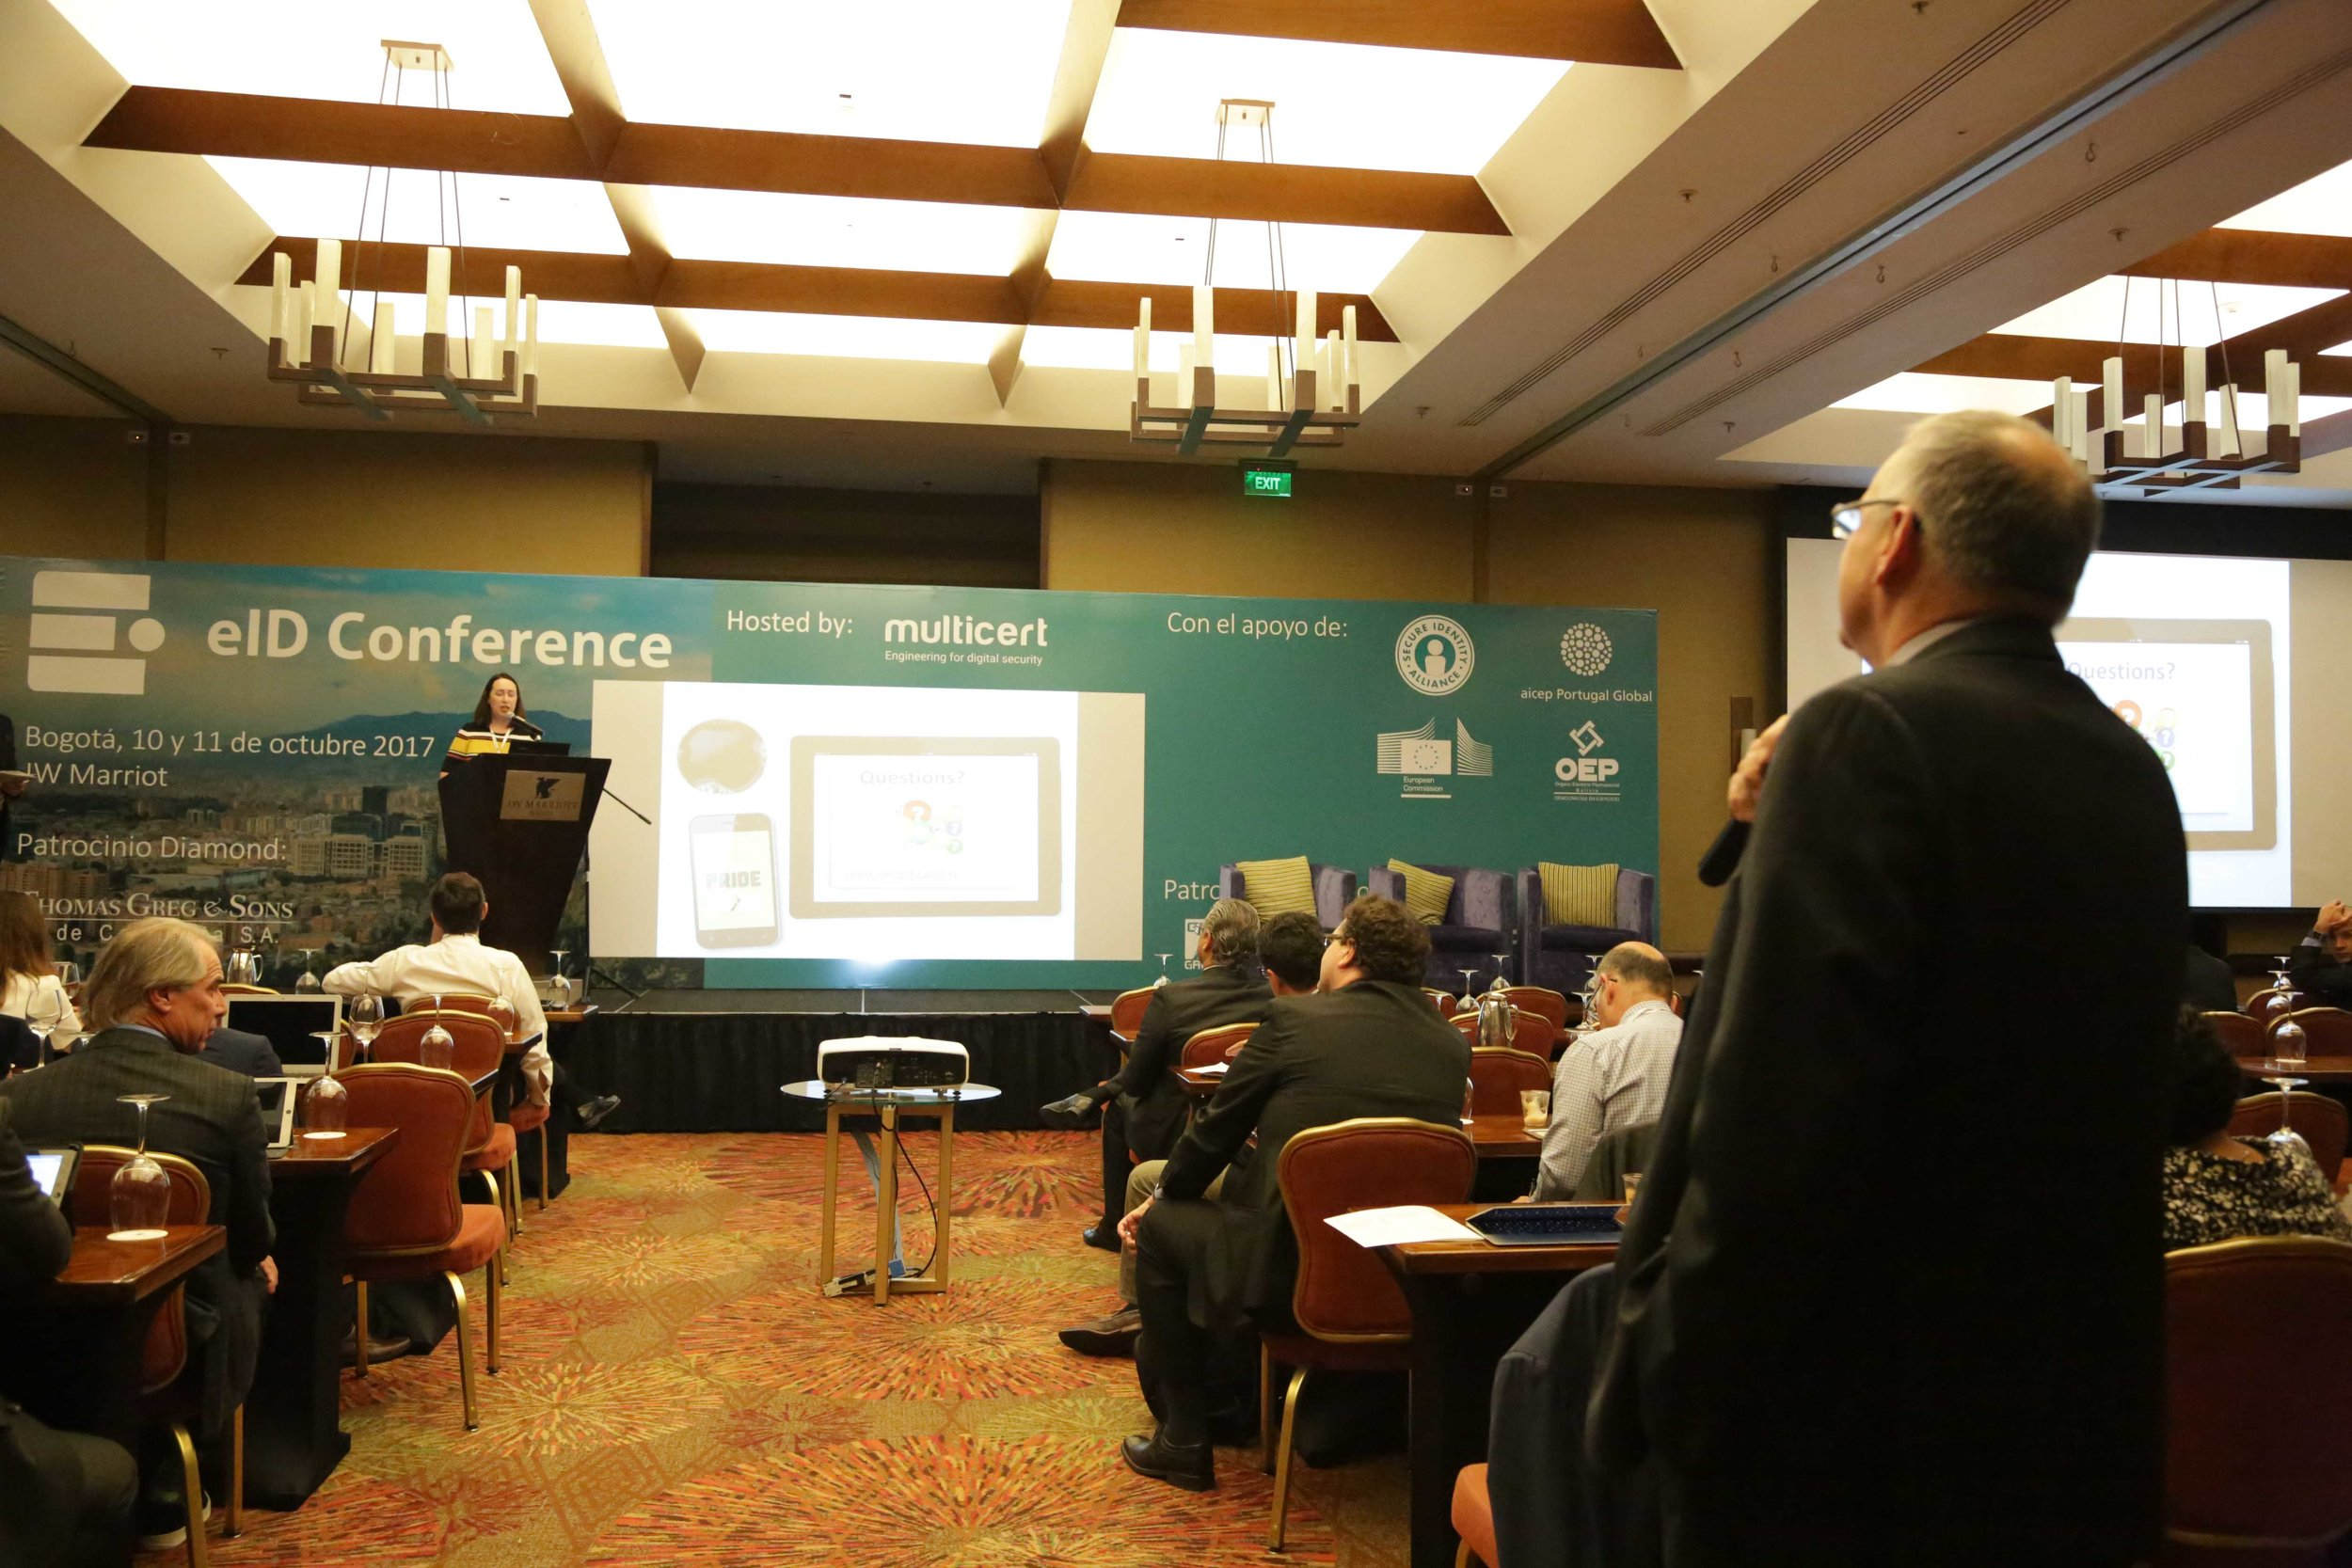 9H EDITION EID CONFERENCE IN BOGOTÁ, COLUMBIA